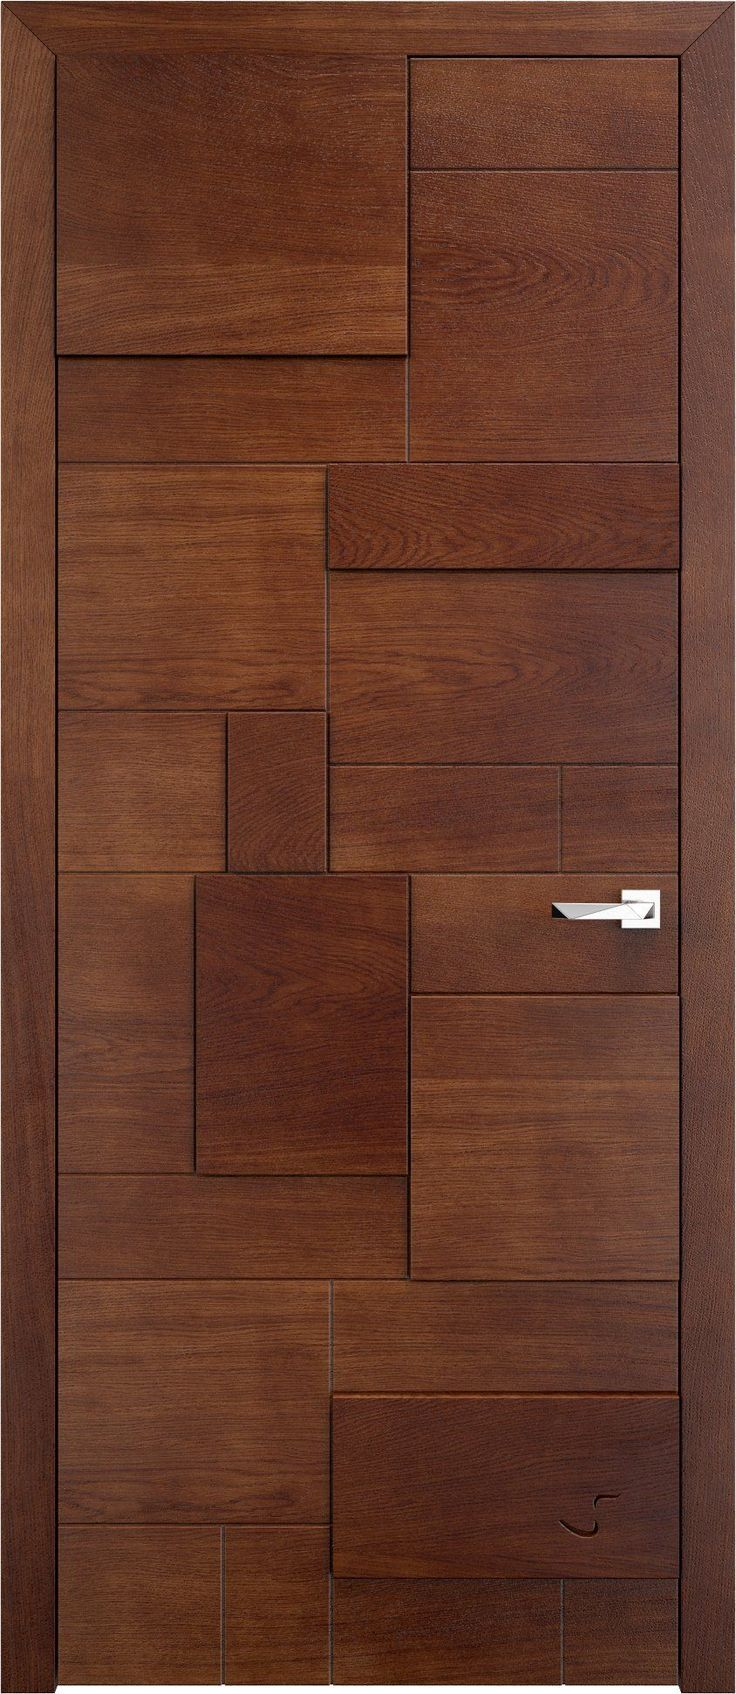 Elegant  modern  as well as  modern-day  strong  timber entry doors  provide your  residence  elegance that can be felt from the curb.Here is a  incredible door design catalogue you can refer for  picking  one of the most  modern  and also  outrage  entryway door for your  gorgeous  house. #modernentrancedoordesign